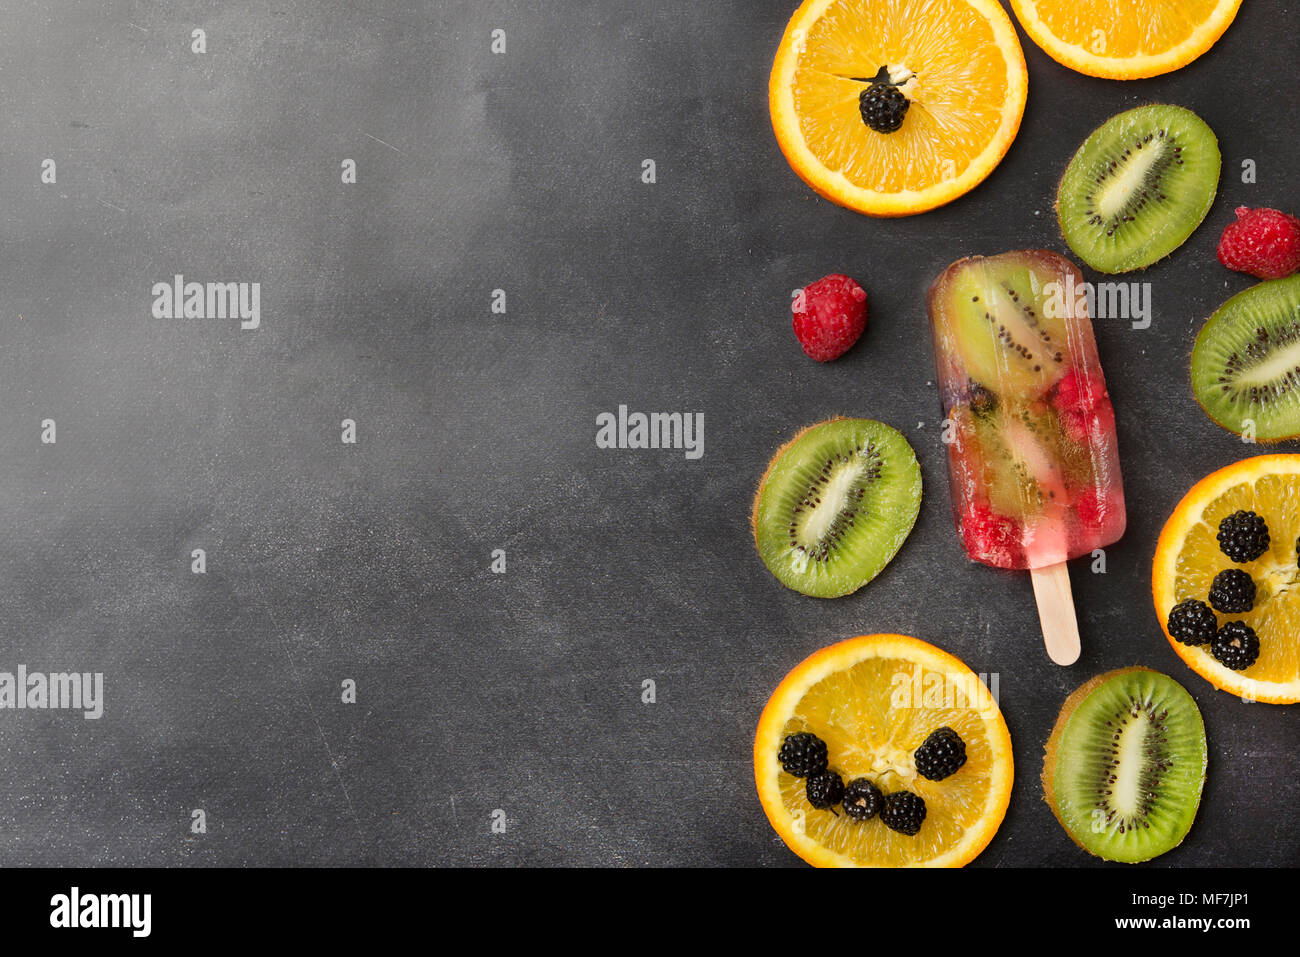 Berries, fruit slices and kiwi berry popsicle on grey background - Stock Image